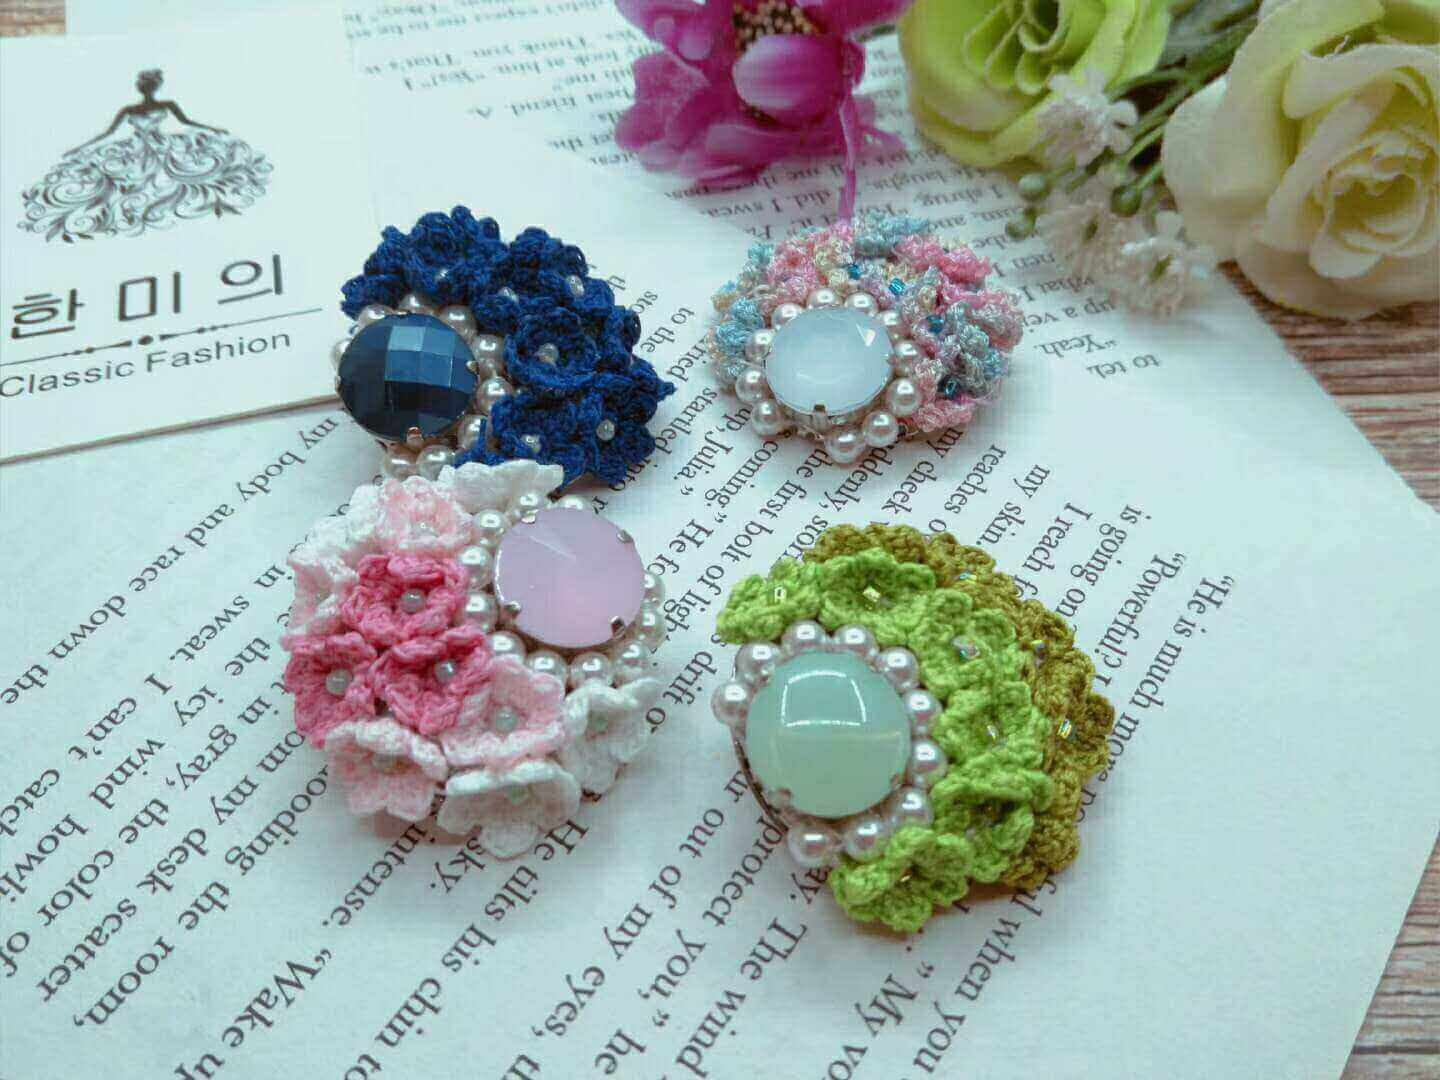 Rhinestone Brooches Design Ideas. Handmade Fabric Brooch Material